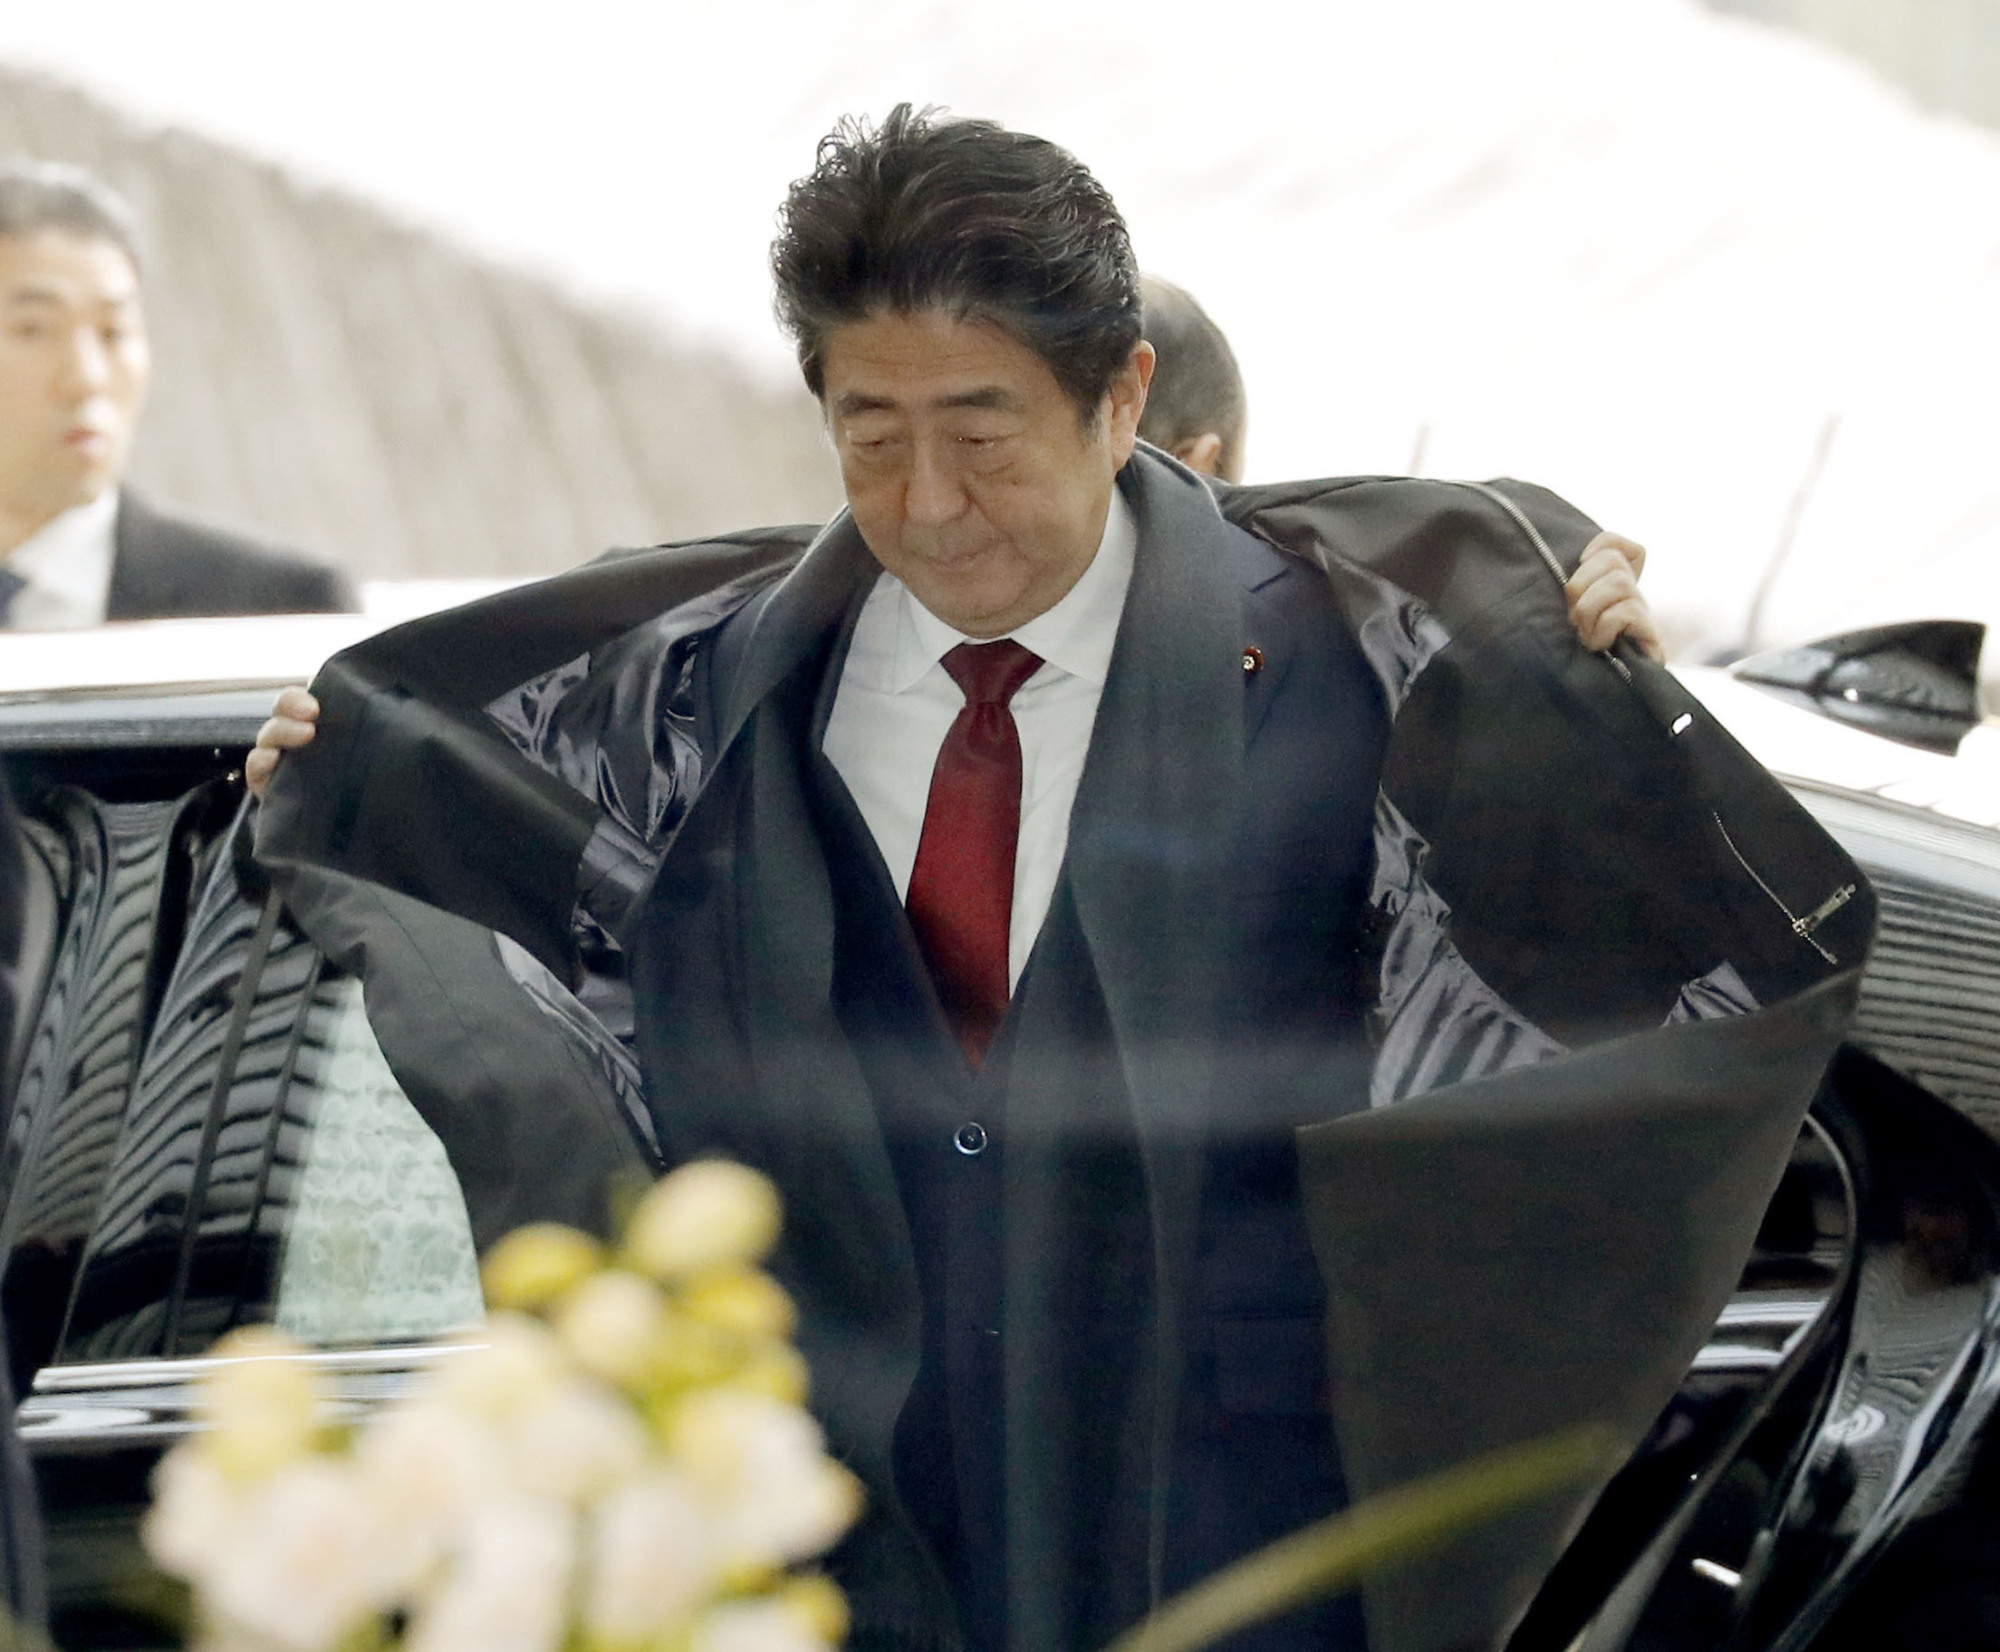 Prime Minister Shinzo Abe's Liberal Democratic Party marked a 7.2 percent increase in revenue from the previous year in 2017, remaining at the top of the list for five straight years, data released Friday has shown. | KYODO